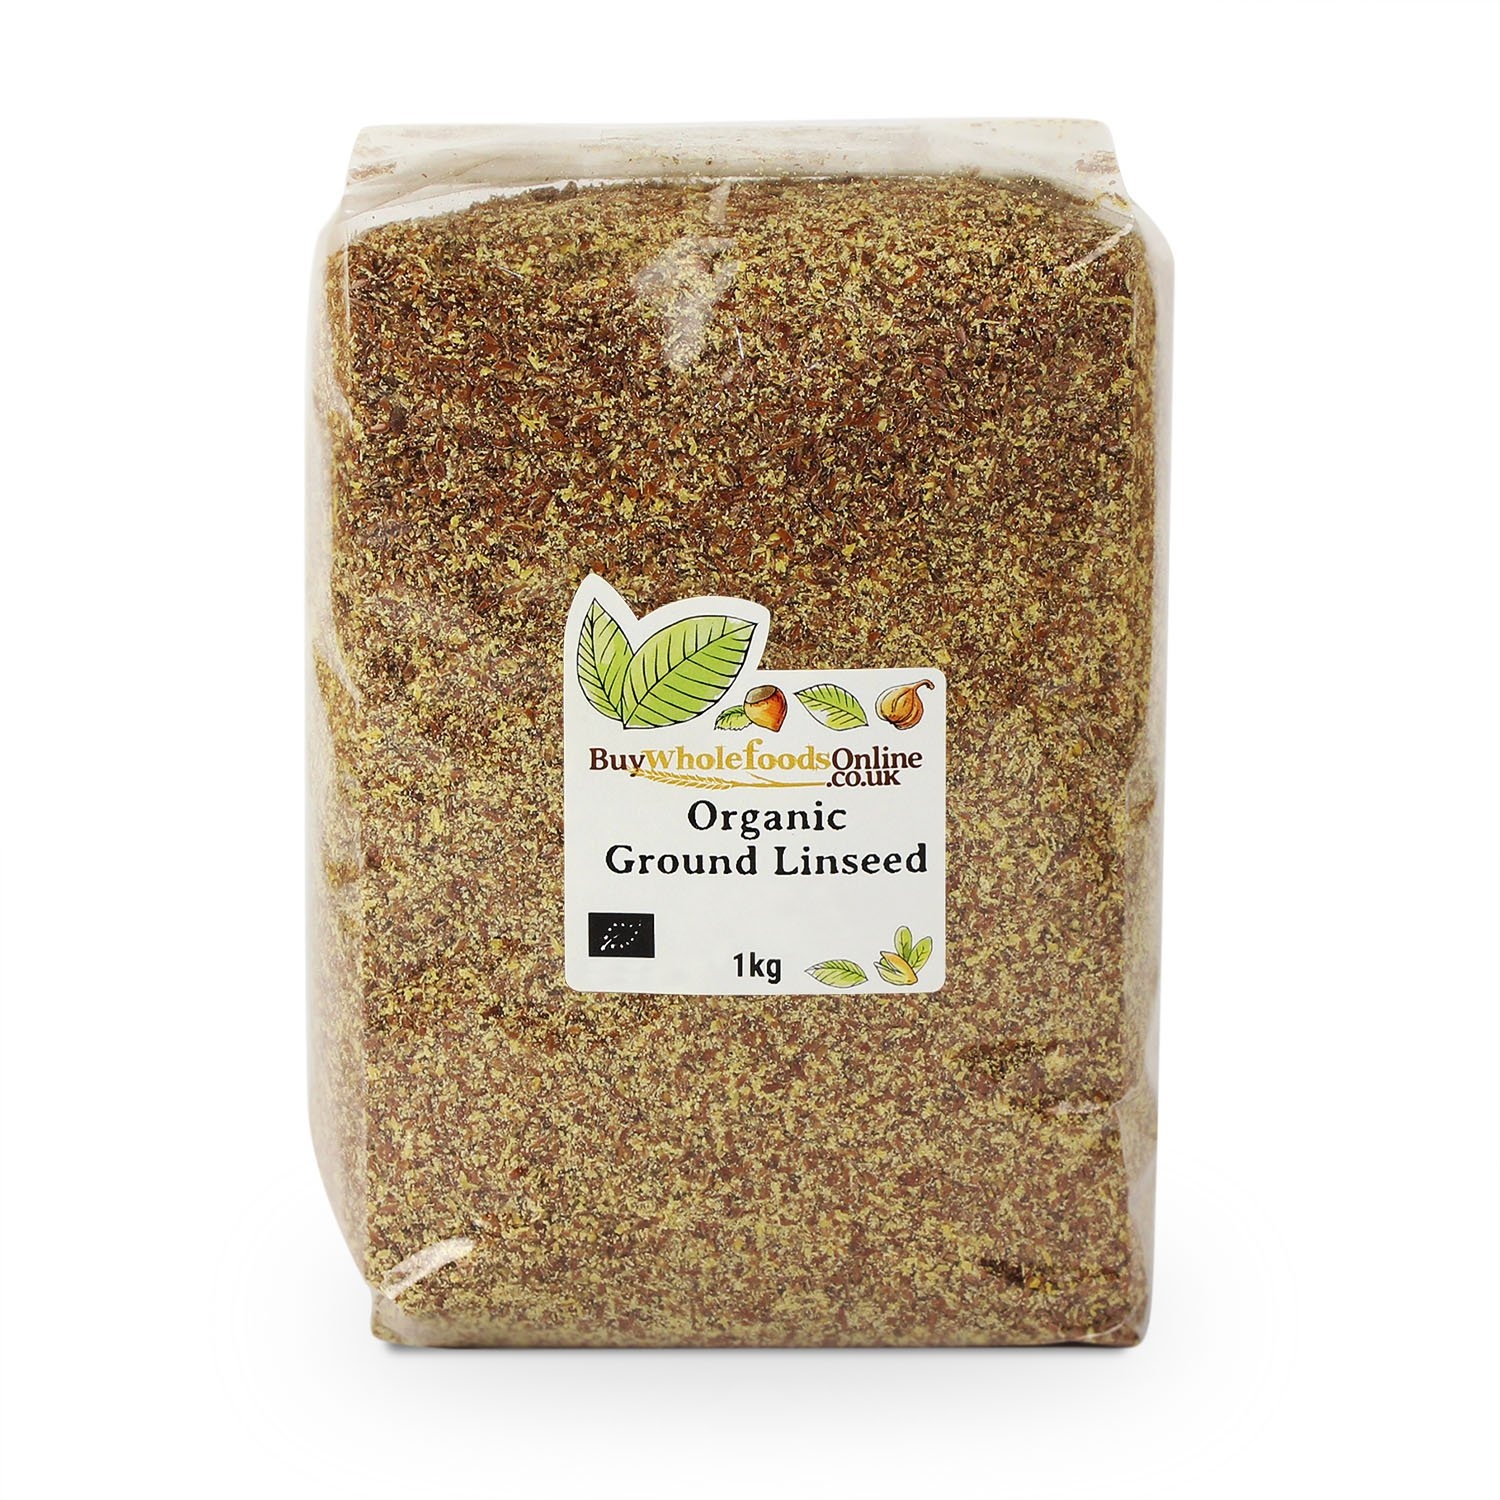 Buy Whole Foods Organic Ground Linseed 1 Kg by Buy Whole Foods